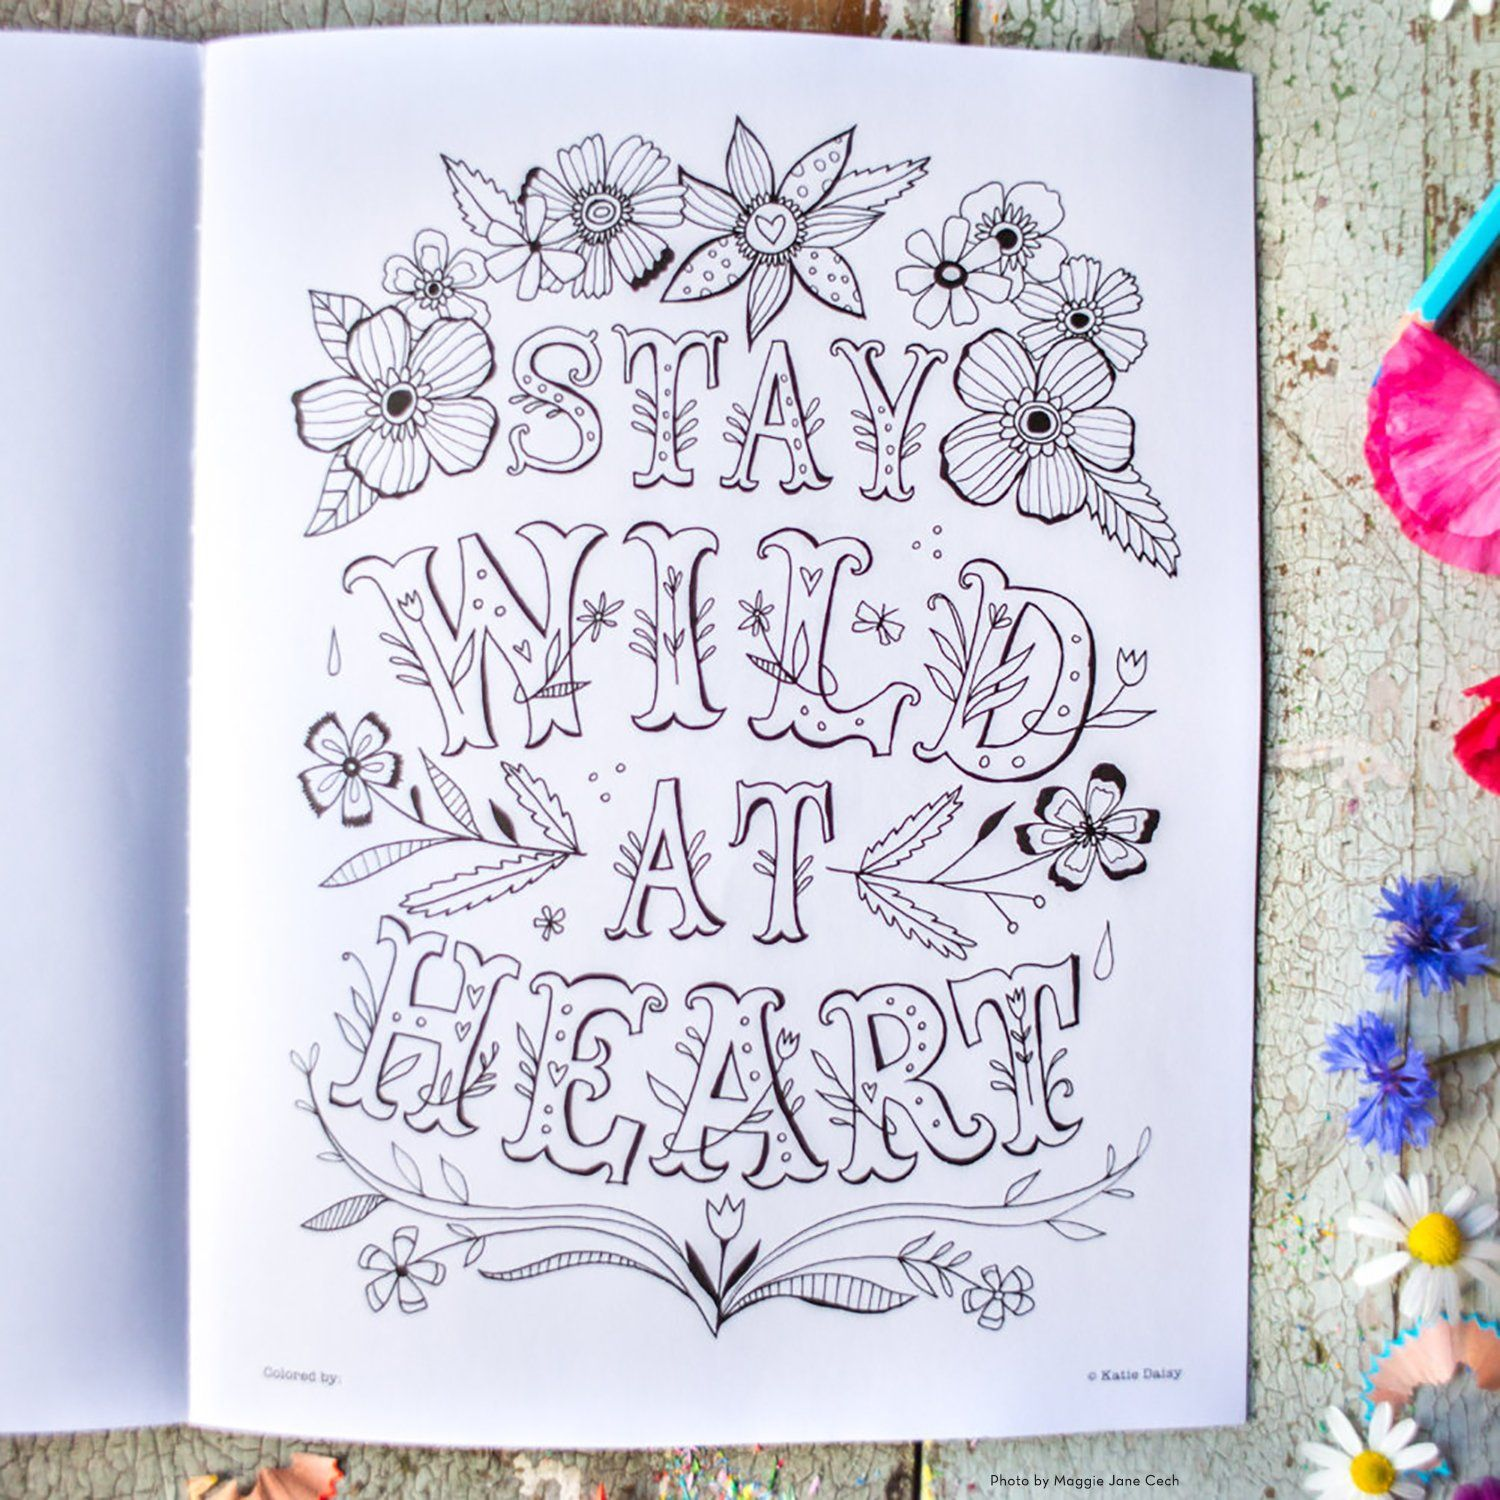 Coloring Book For Adults With Each Illustration She Revels In The Joy Of Everyday Life And Her Love Of Nature Invites Y Coloring Books Heart For Kids Daisy Art